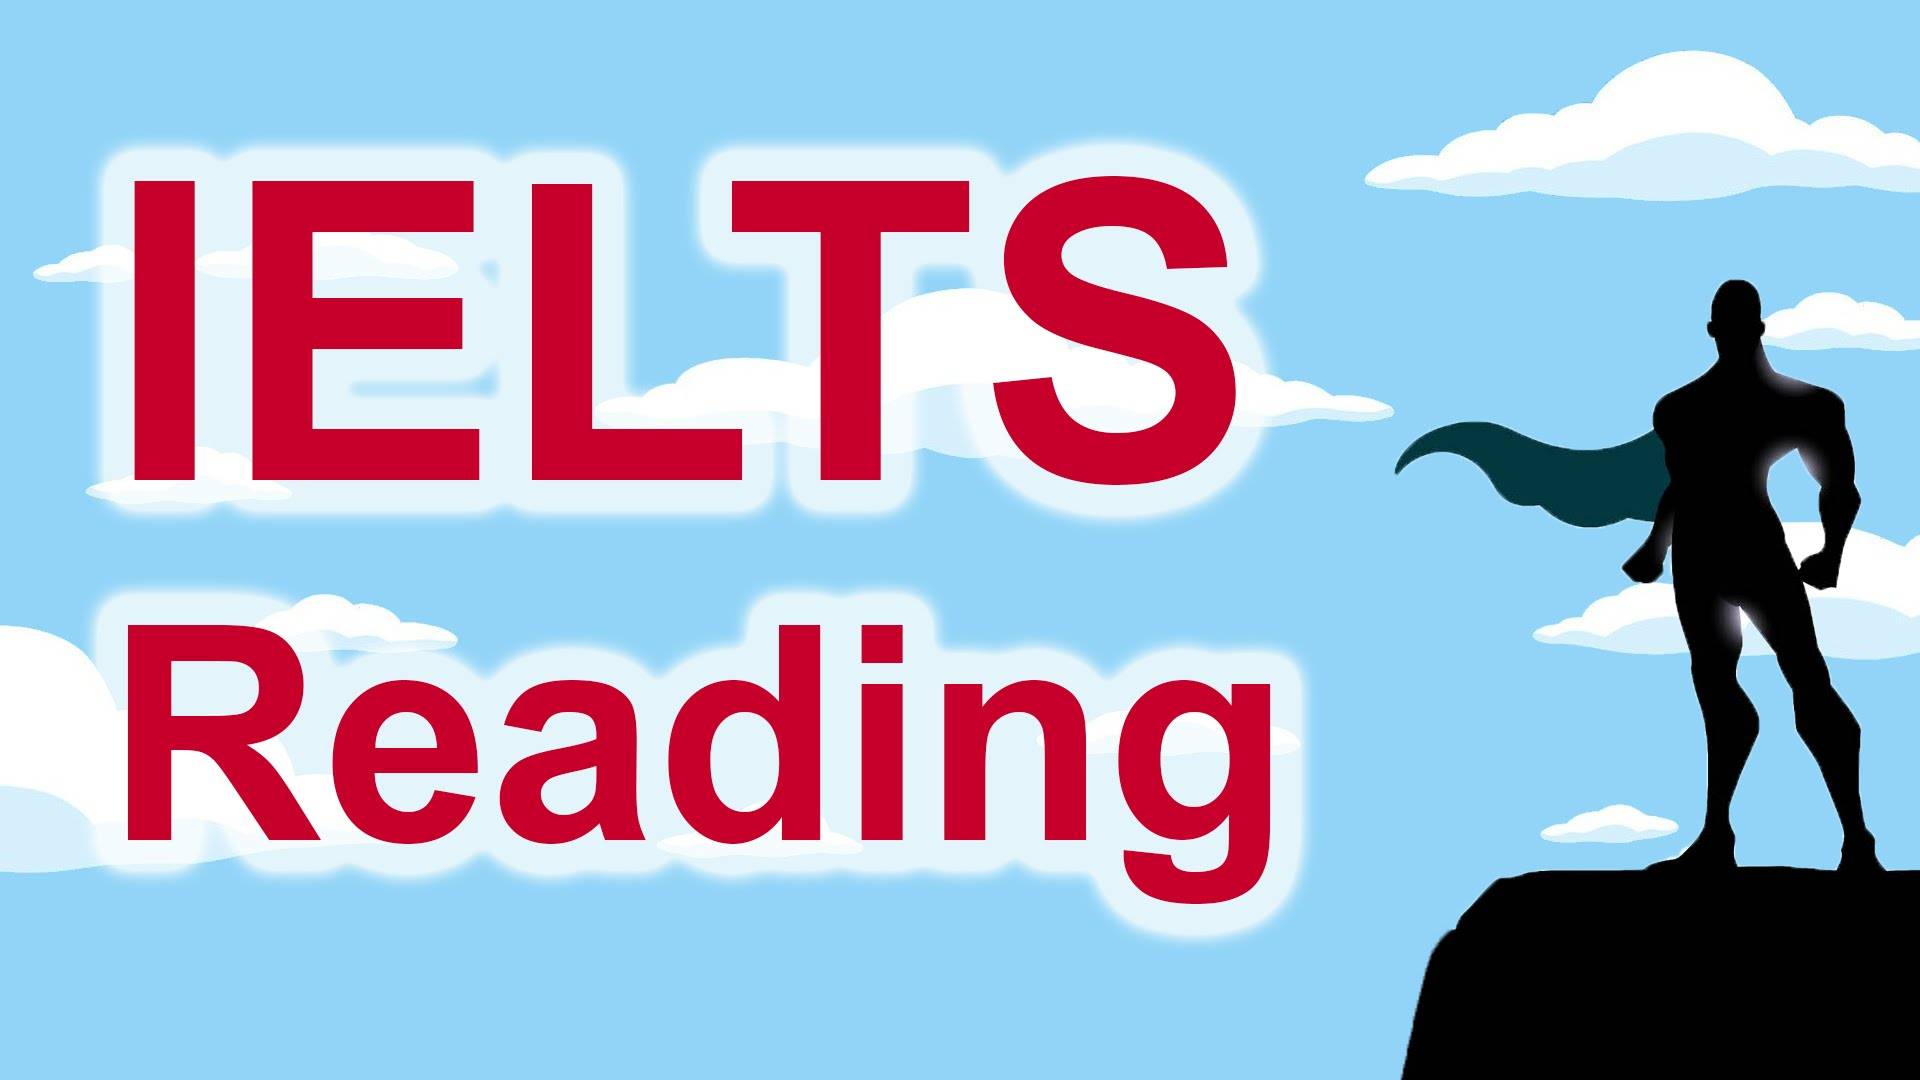 Chapter 5: The Key to IELTS reading - Learn Vocab in IELTS Reading